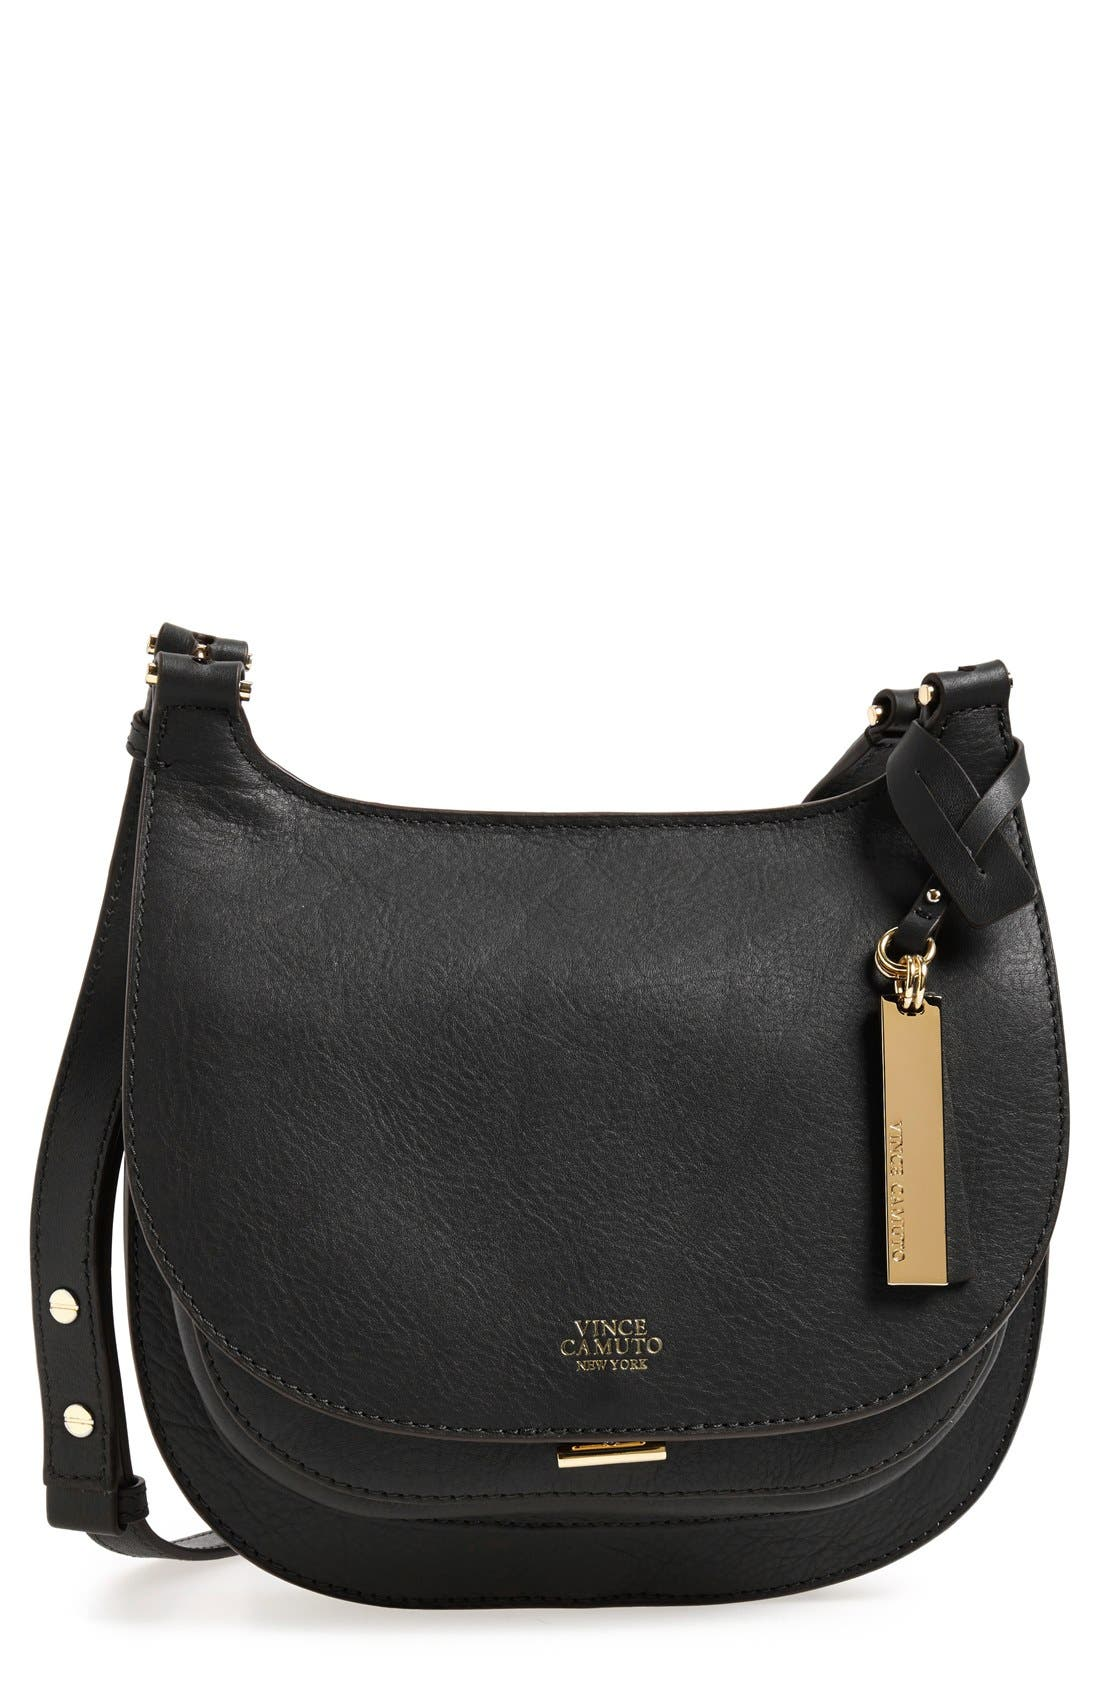 Main Image - Vince Camuto 'Small Elyza' Crossbody Bag